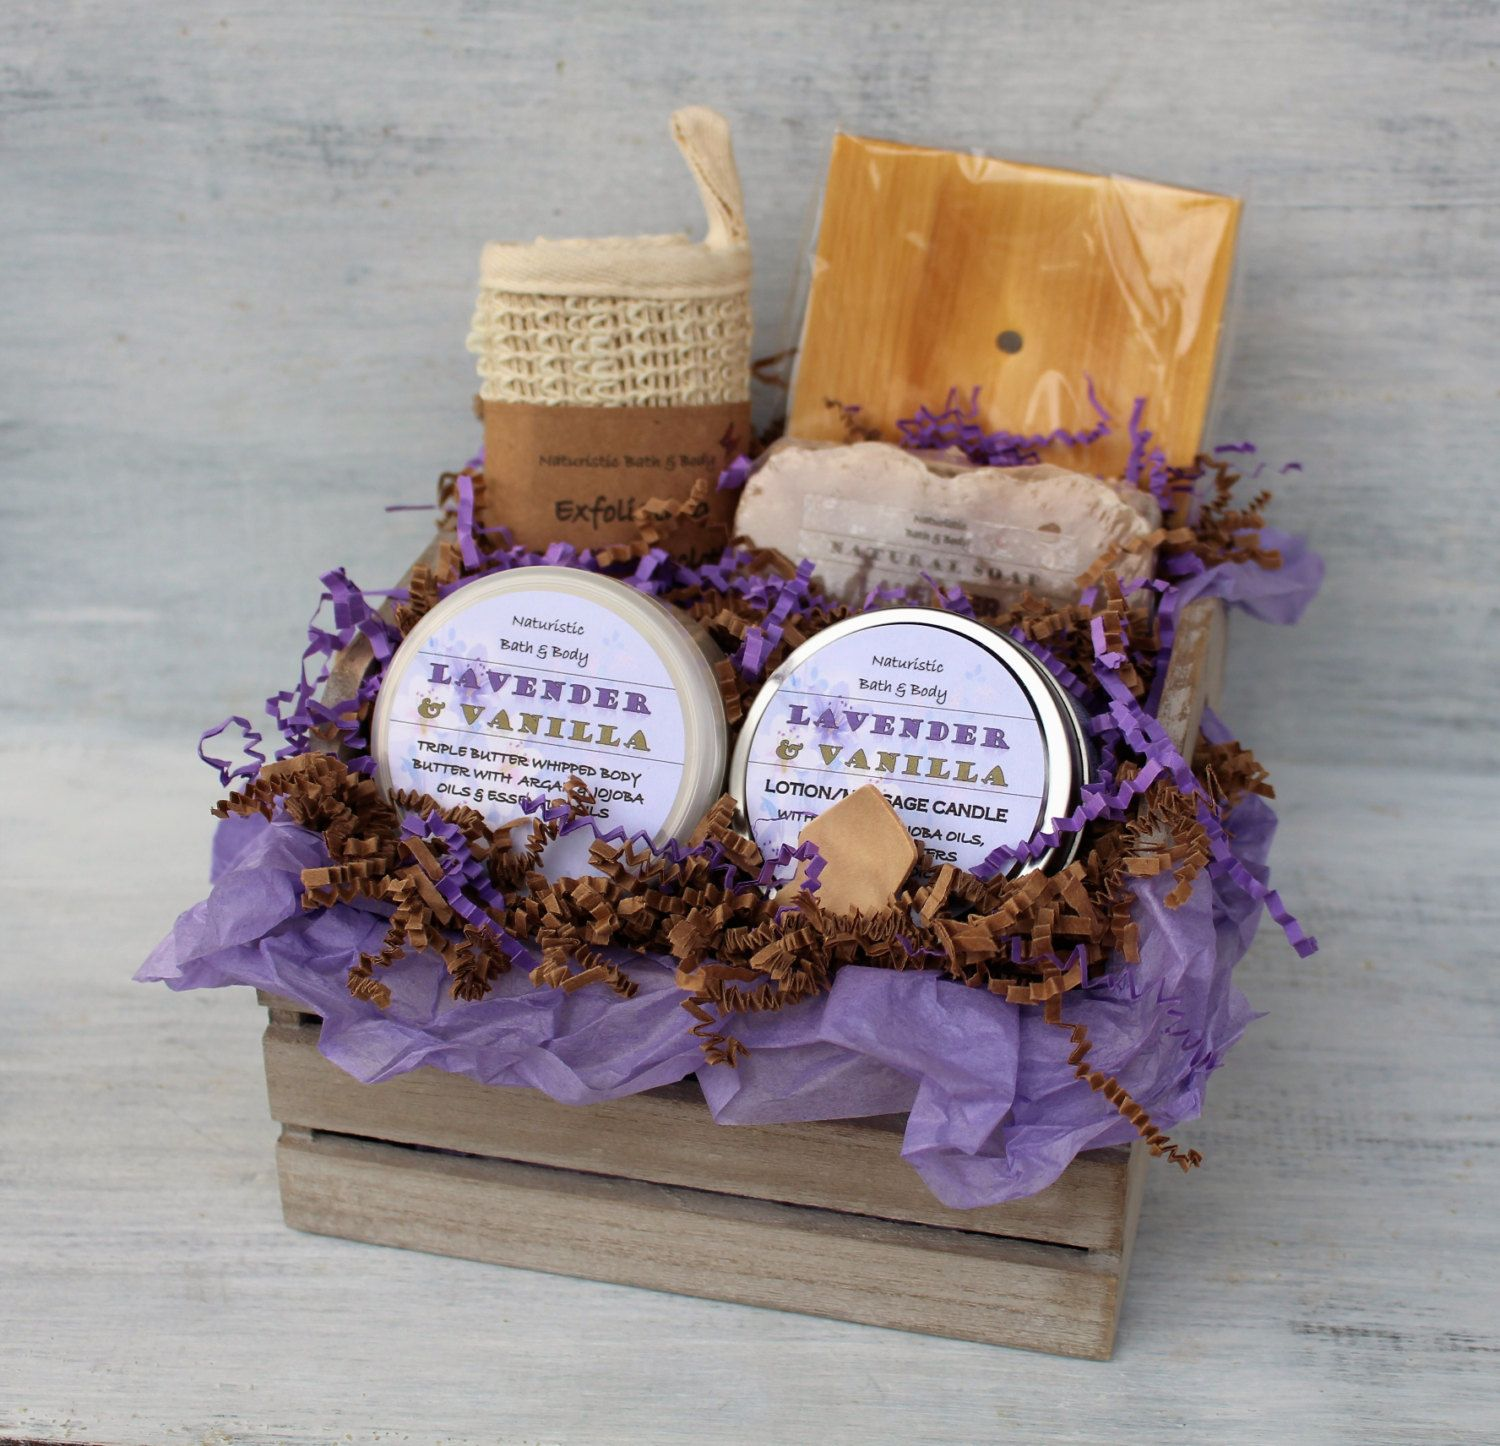 Handmade Soap Baskets : Lavender vanilla bath body gift basket spa set